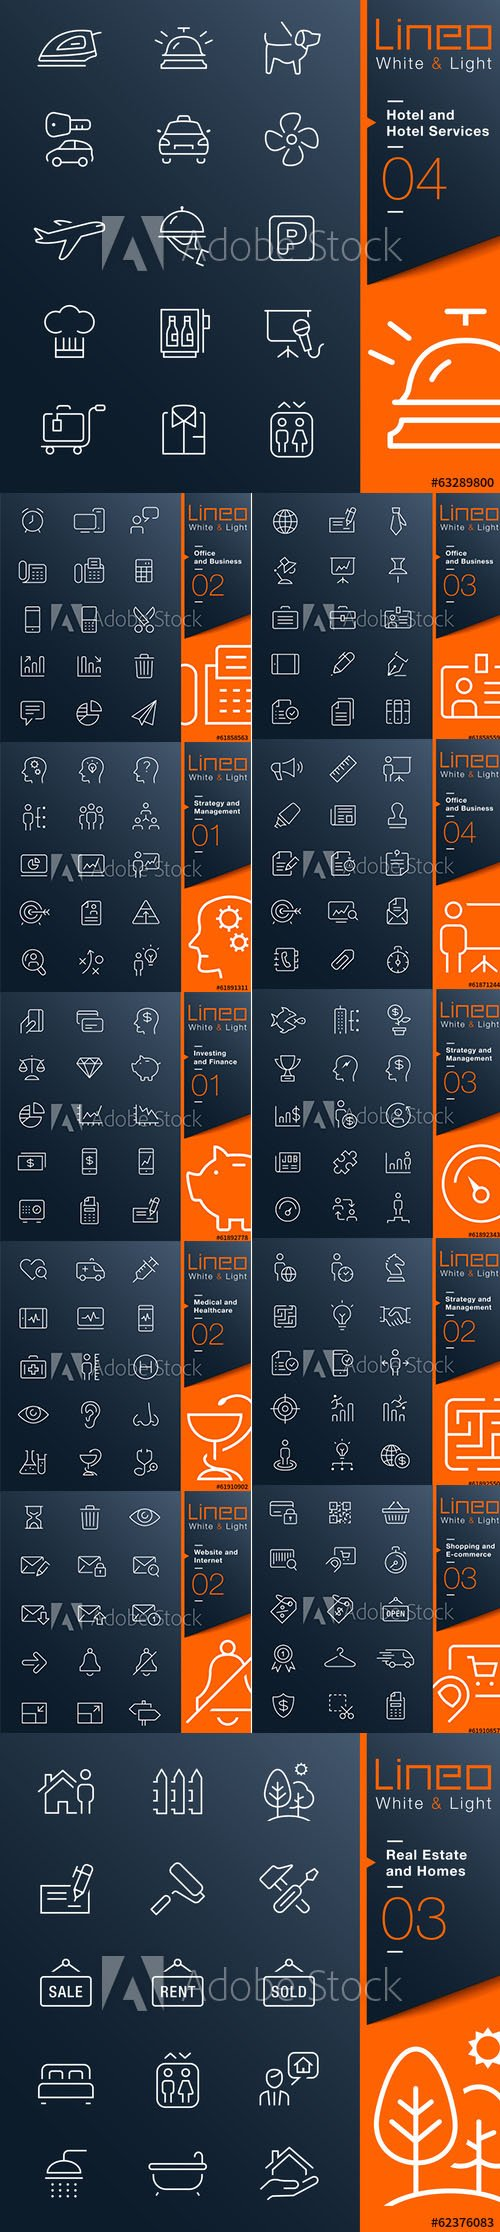 Lineo White and Light Outline Icons Vol 2